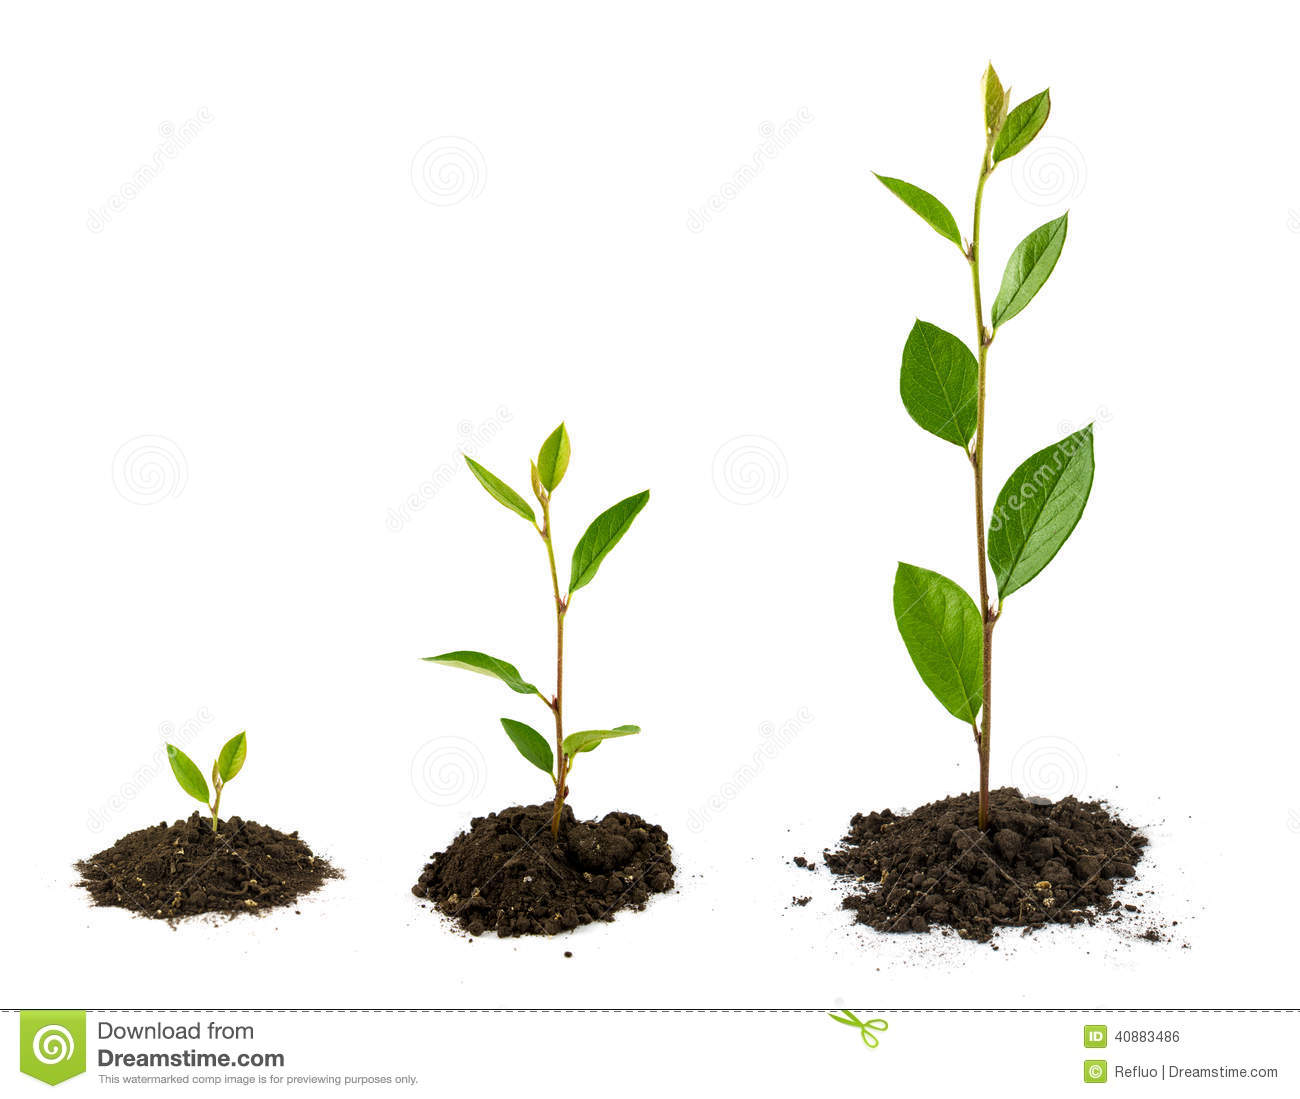 mustard seed plant pictures